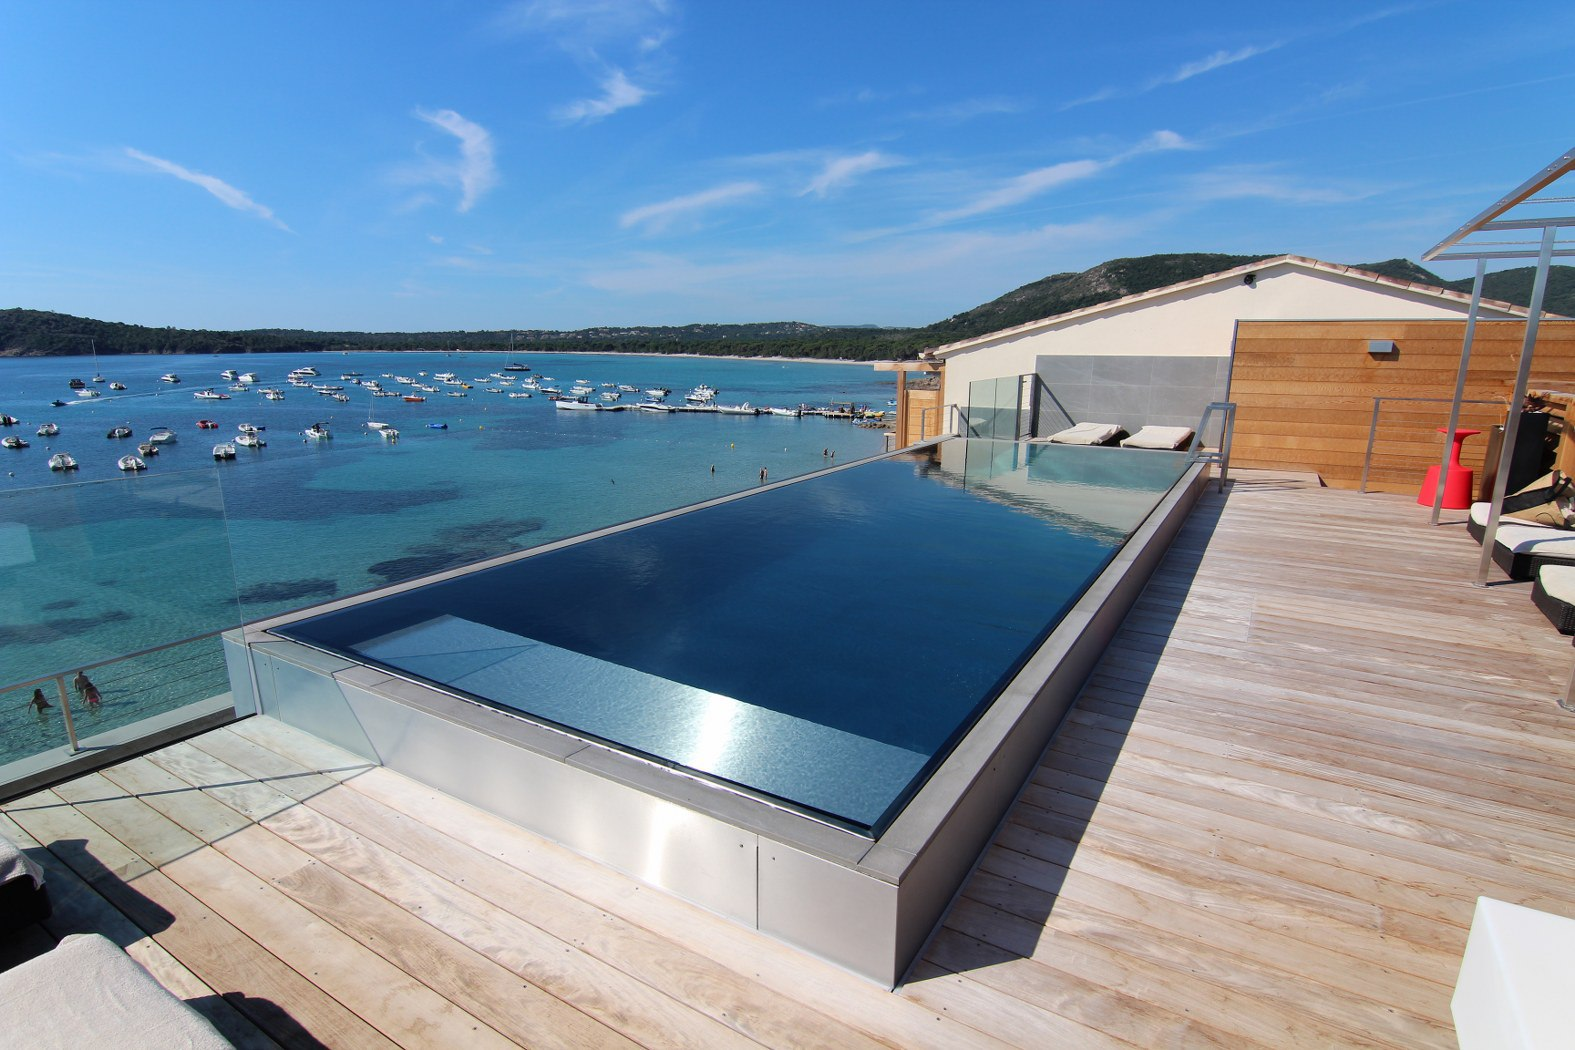 stainless steel pools paramount pools. Black Bedroom Furniture Sets. Home Design Ideas